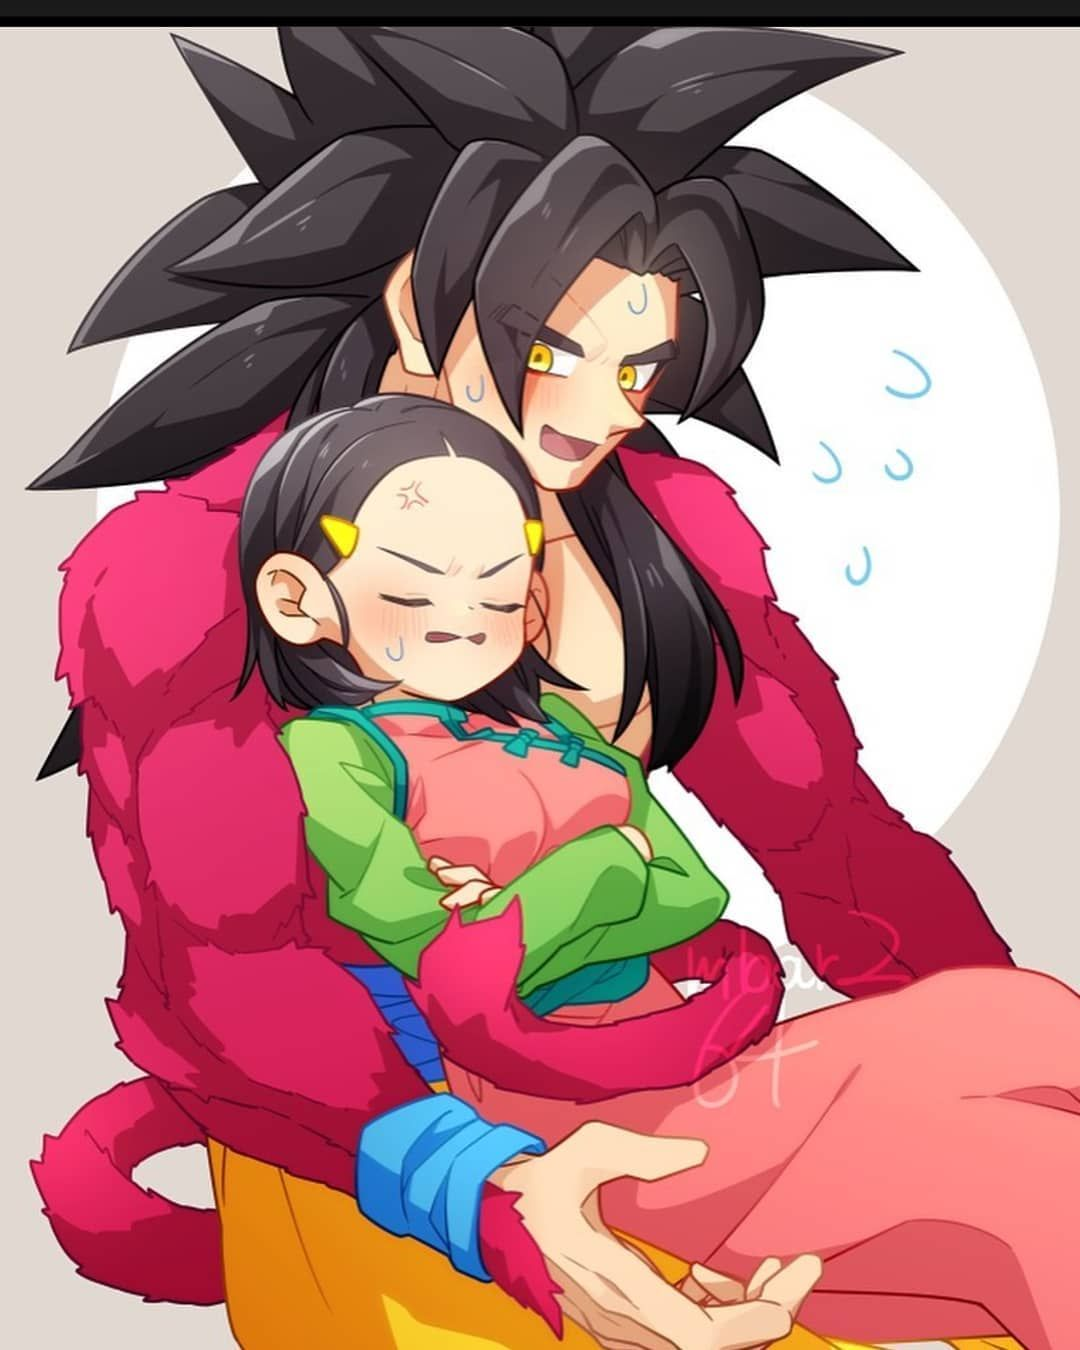 Dragonball Art On Instagram Ssj4 Goku With His Wife Chi Chi Done By Mbar2 64 Follow Dragon Ball Super Manga Anime Dragon Ball Super Dragon Ball Super Funny